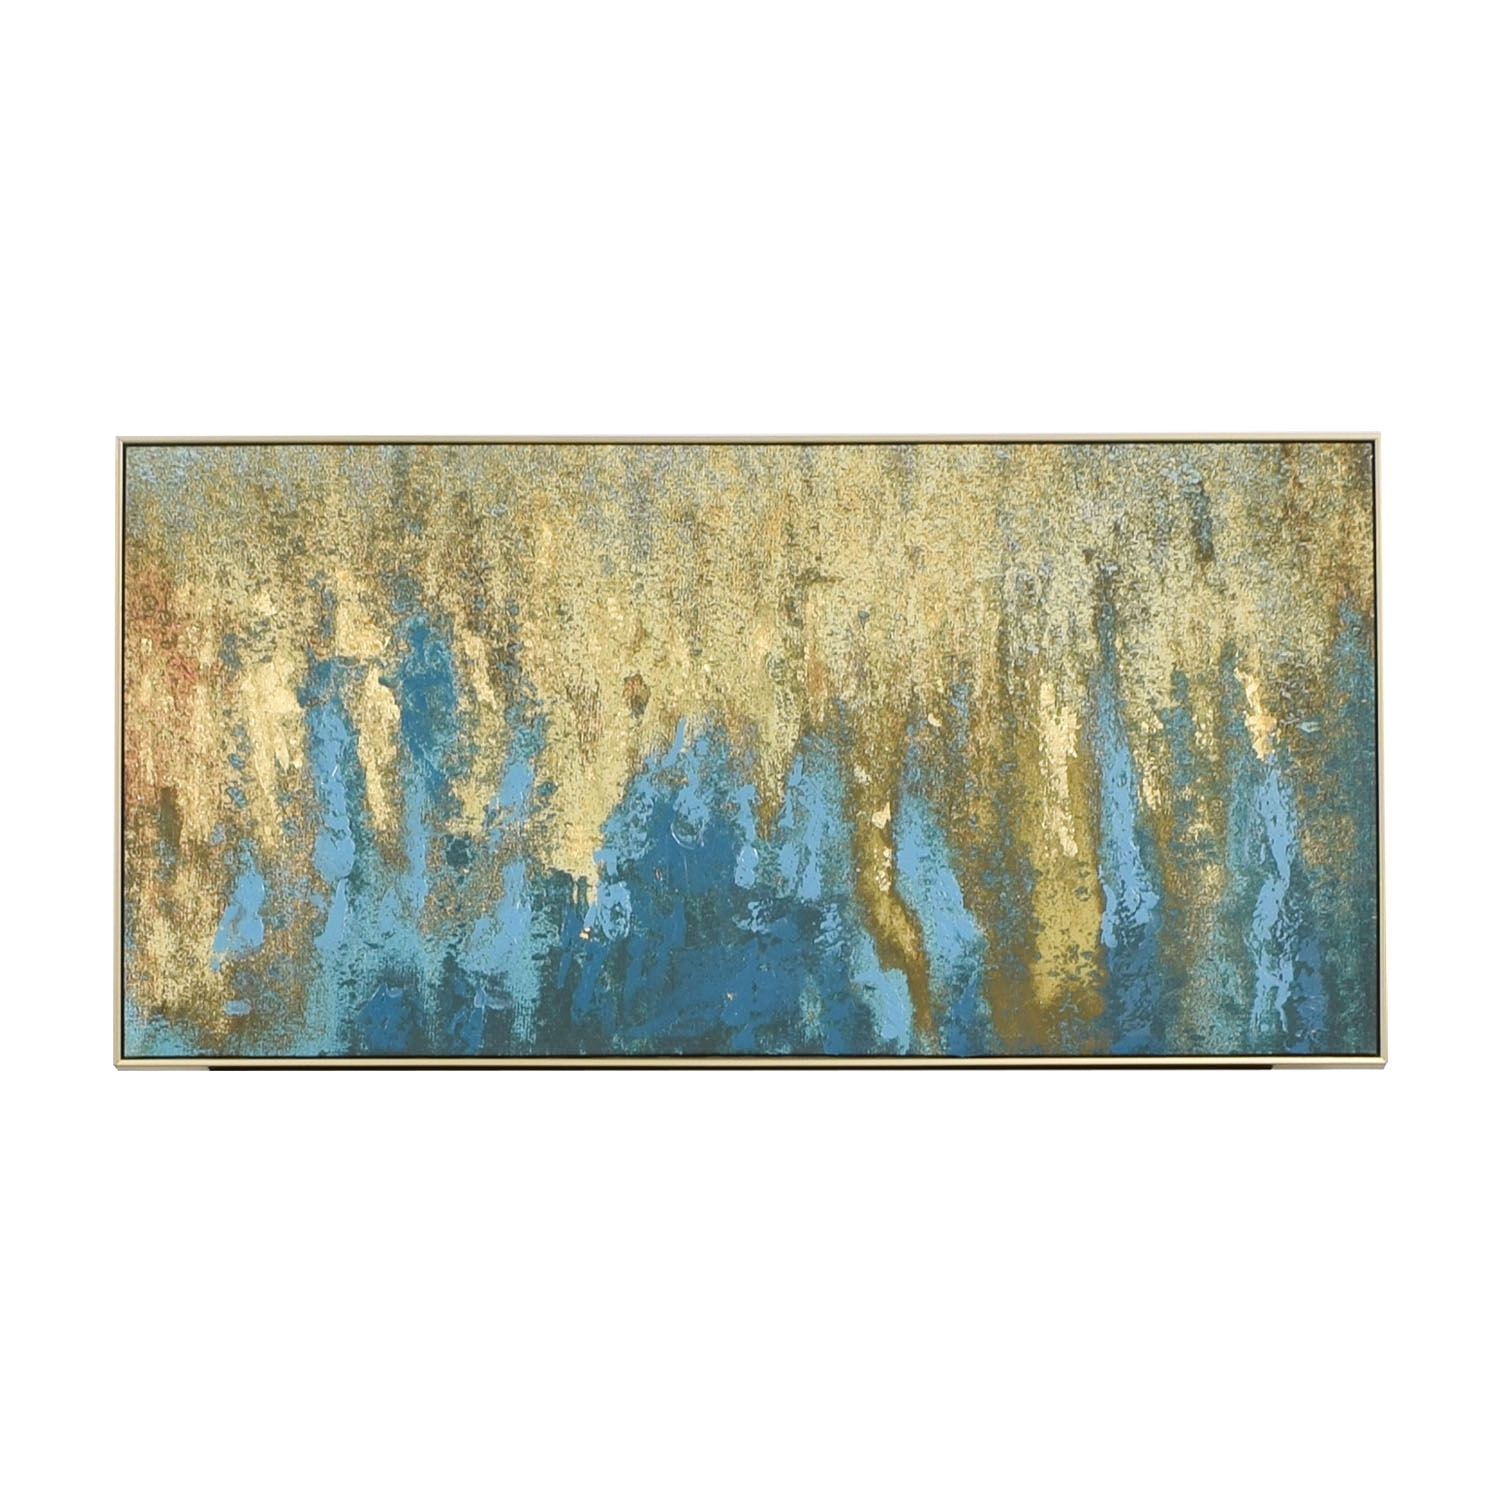 59% Off   World Market World Market Teal & Gold Wall Art In Gold Intended For World Market Wall Art (Photo 3 of 20)